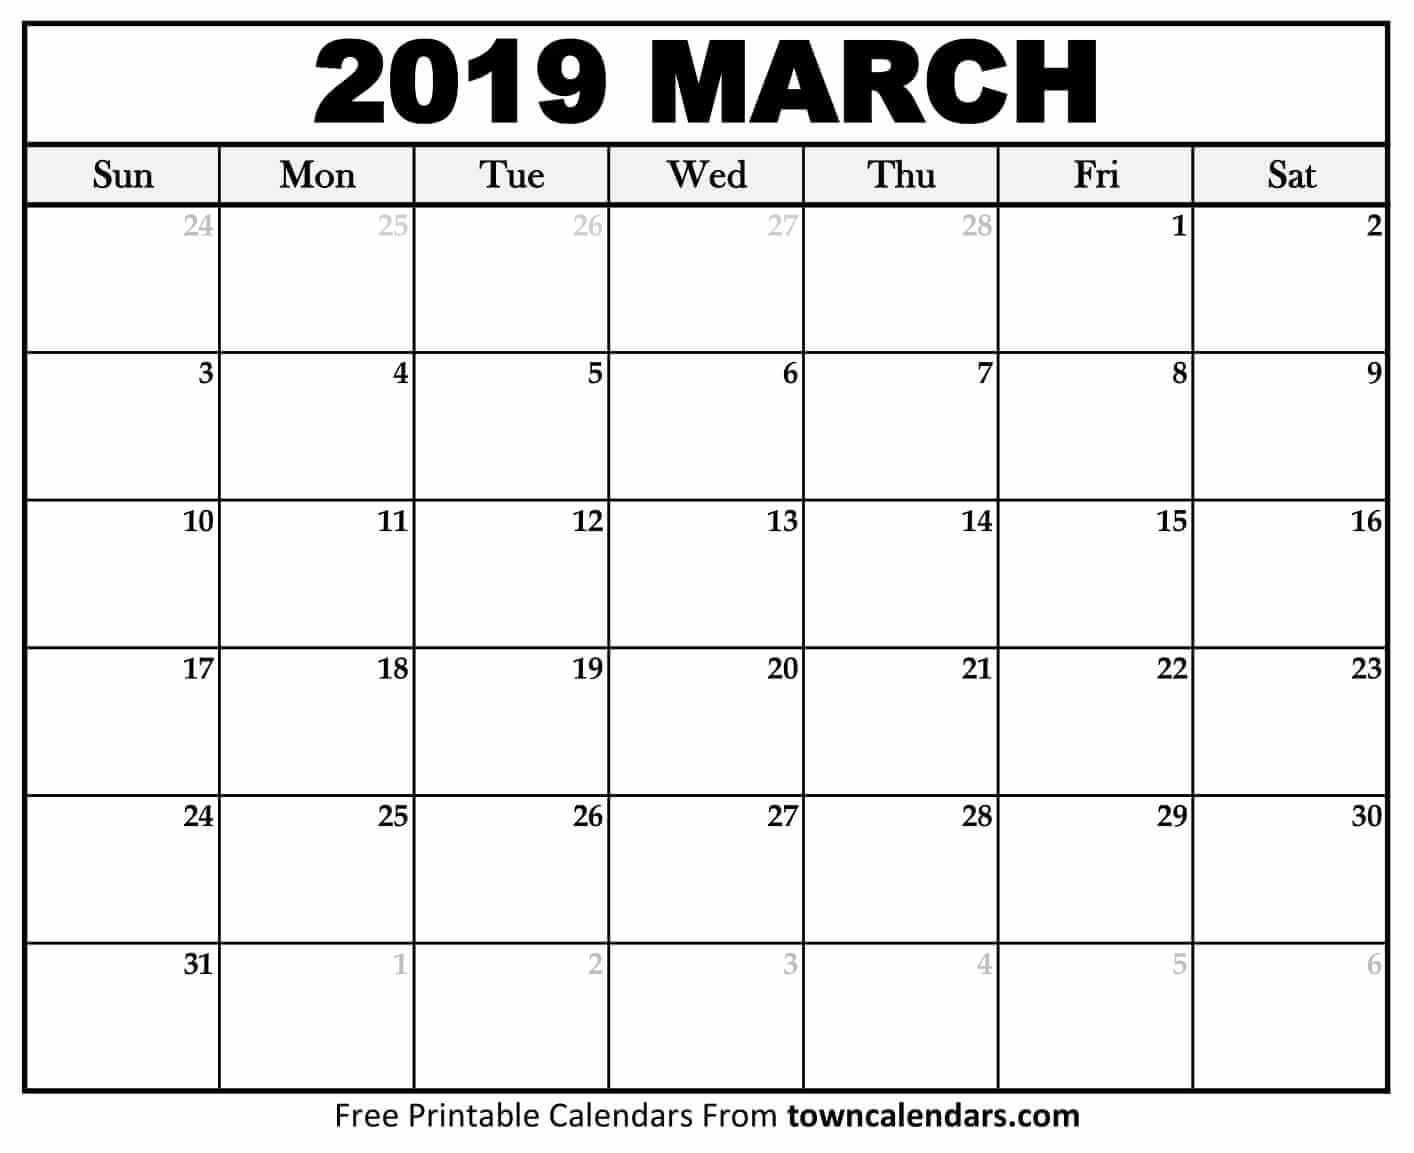 Printable March 2019 Calendar - Towncalendars March 2 2019 Calendar